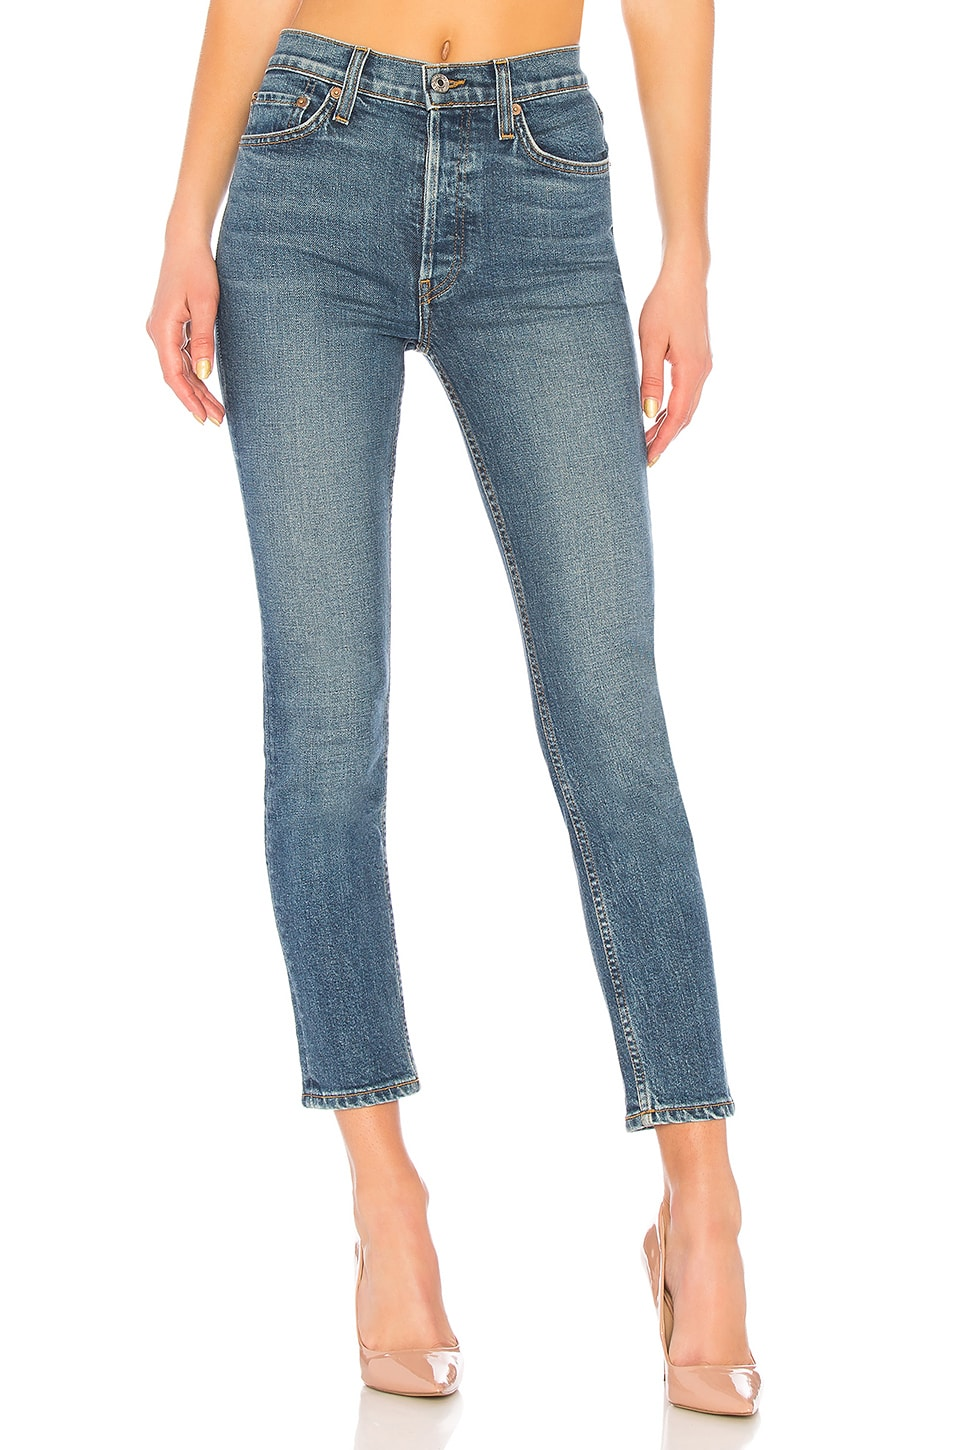 RE/DONE Originals High Rise Ankle Crop in Mid 70s